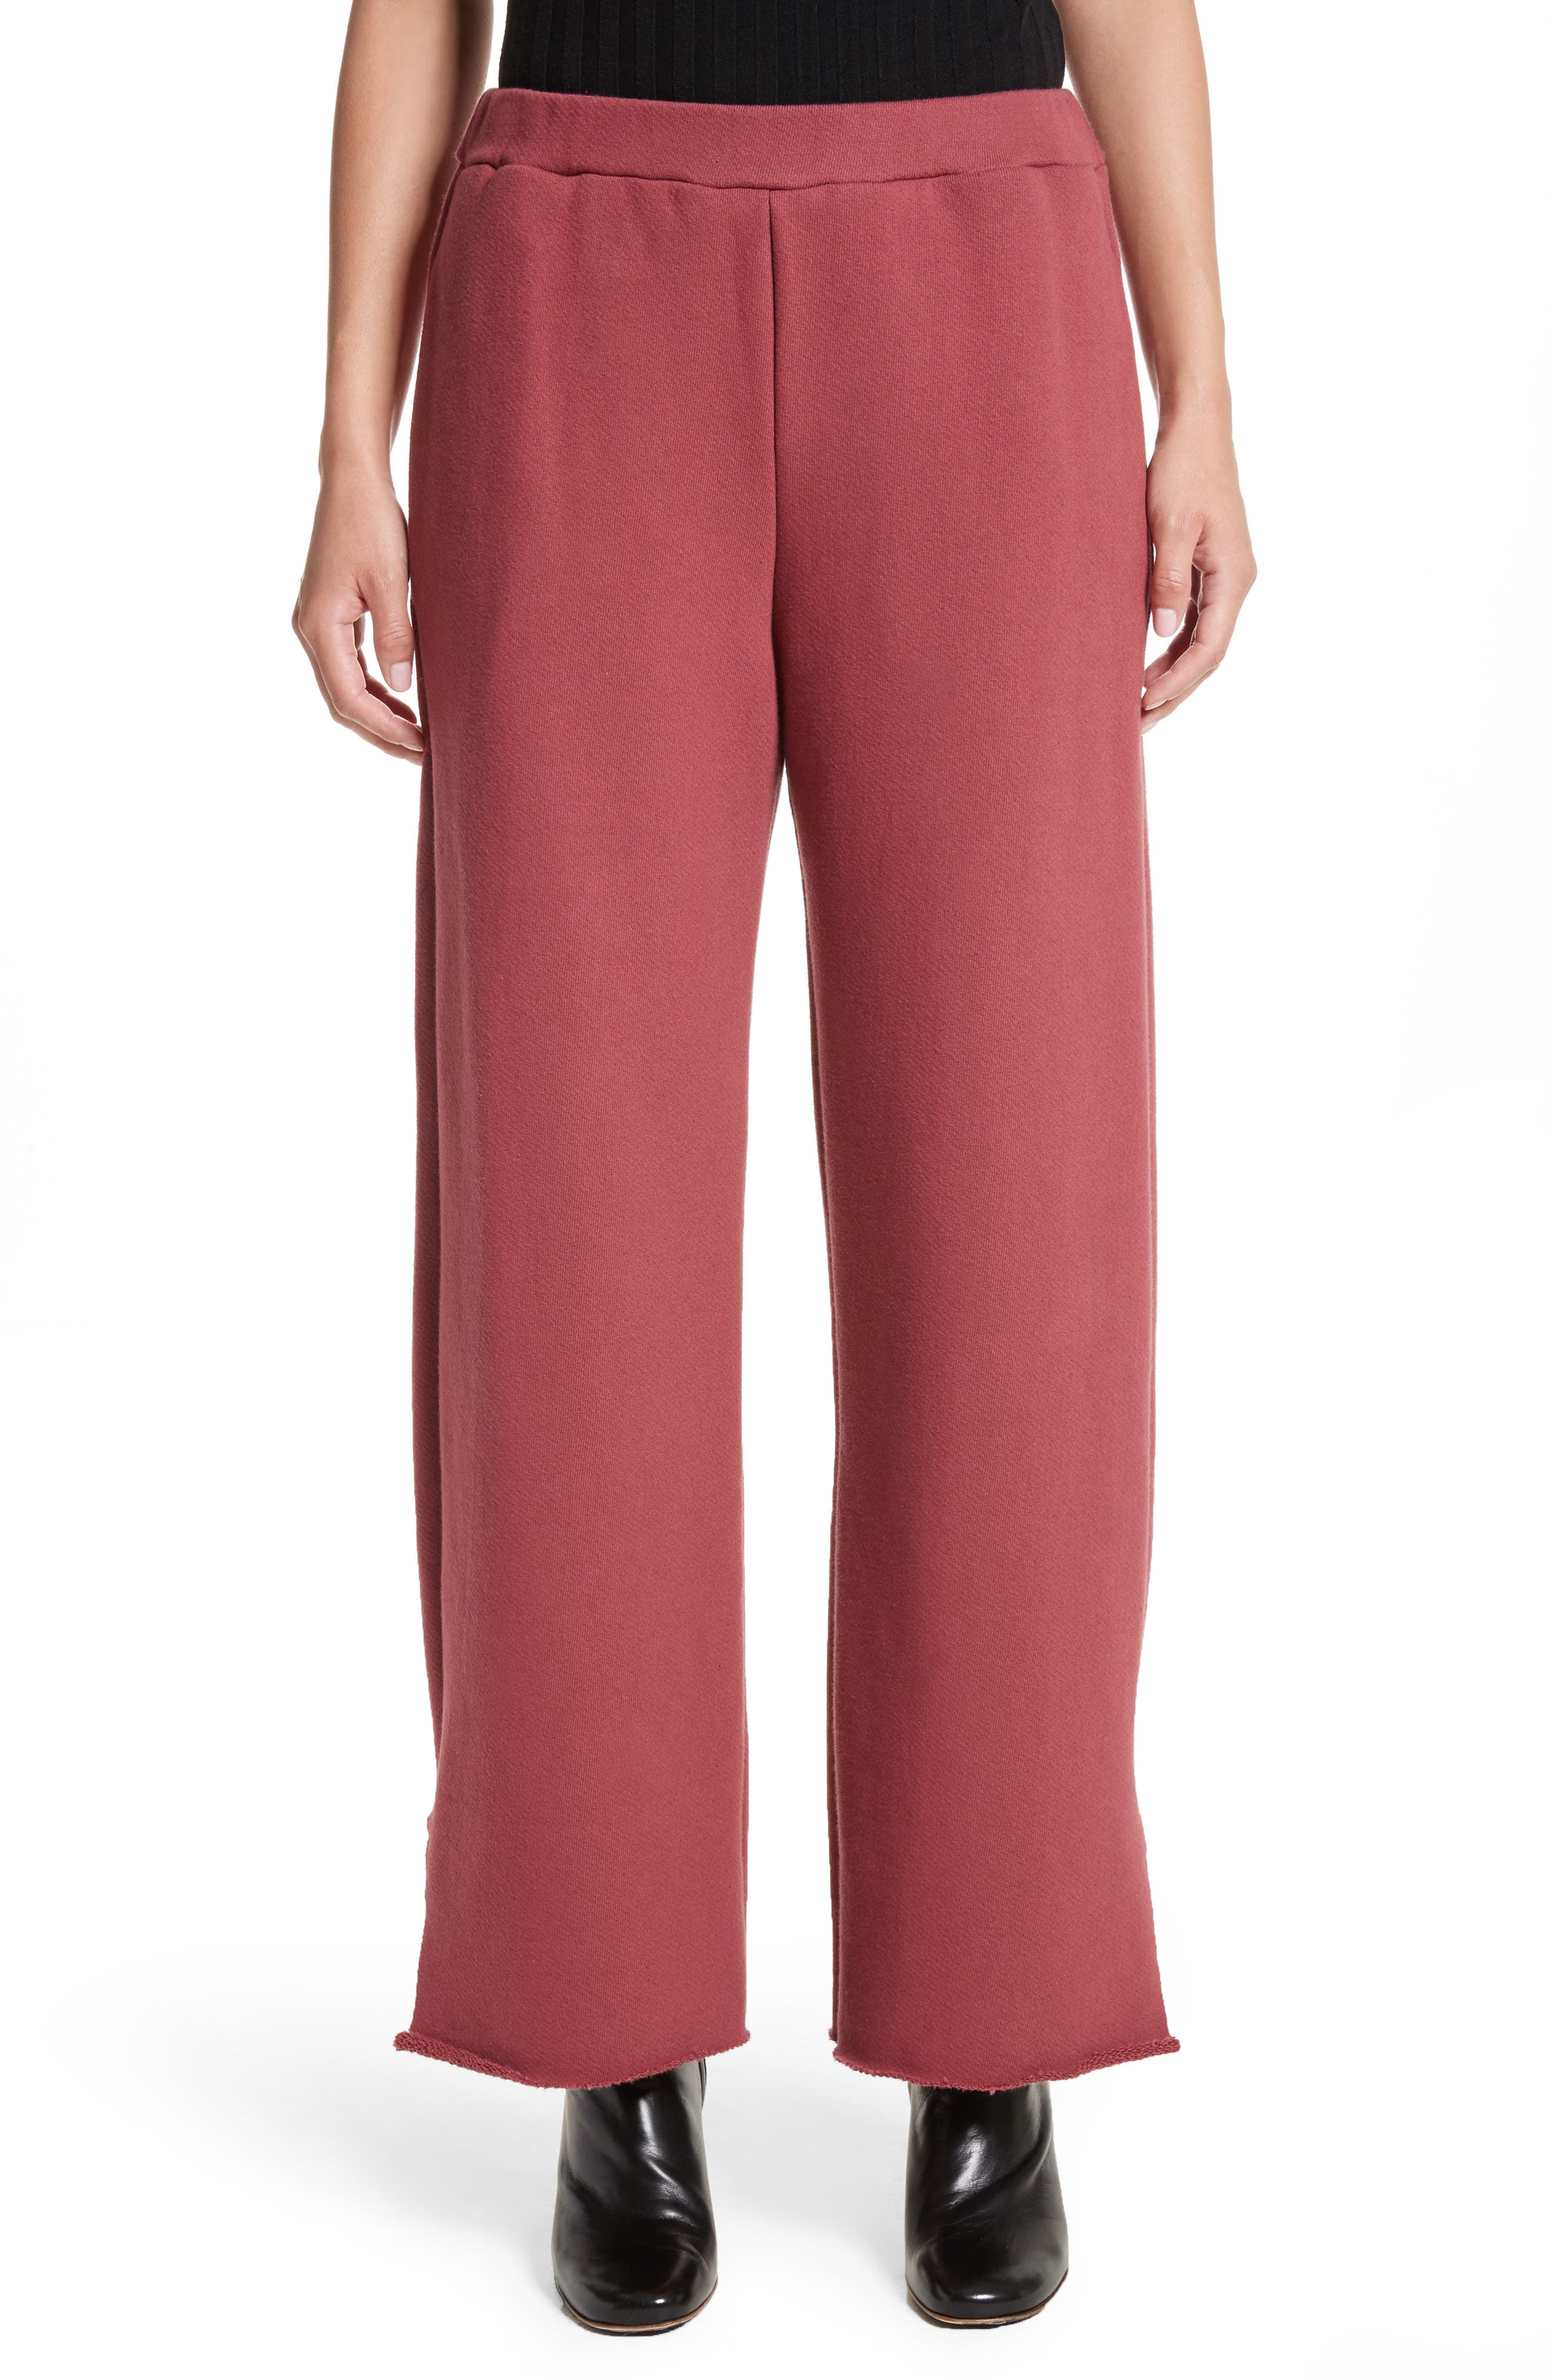 Canal French Terry Sweatpants,                             Main thumbnail 1, color,                             Tegola Pink